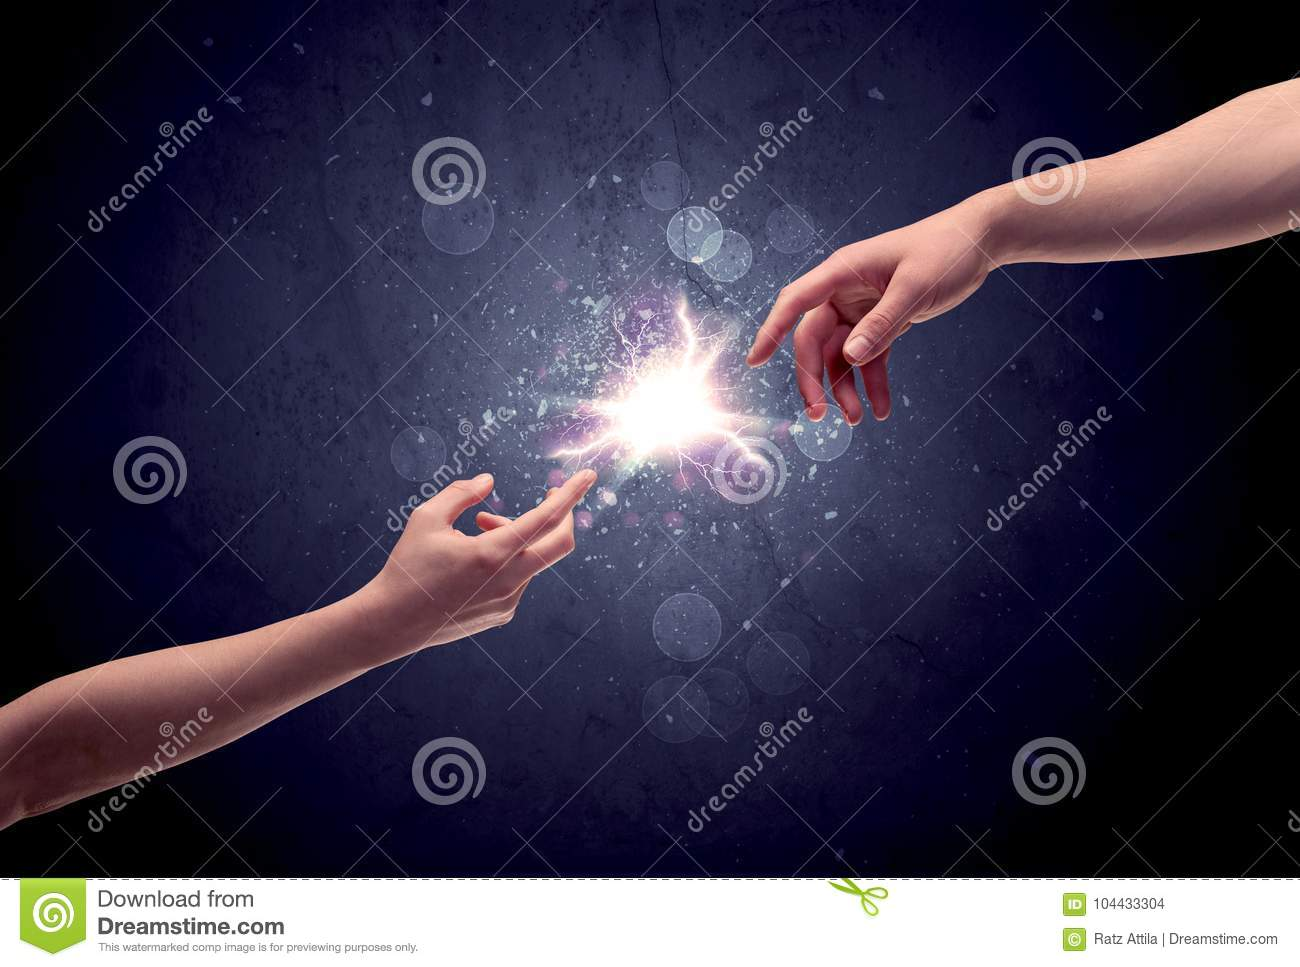 Hands reaching to light a spark